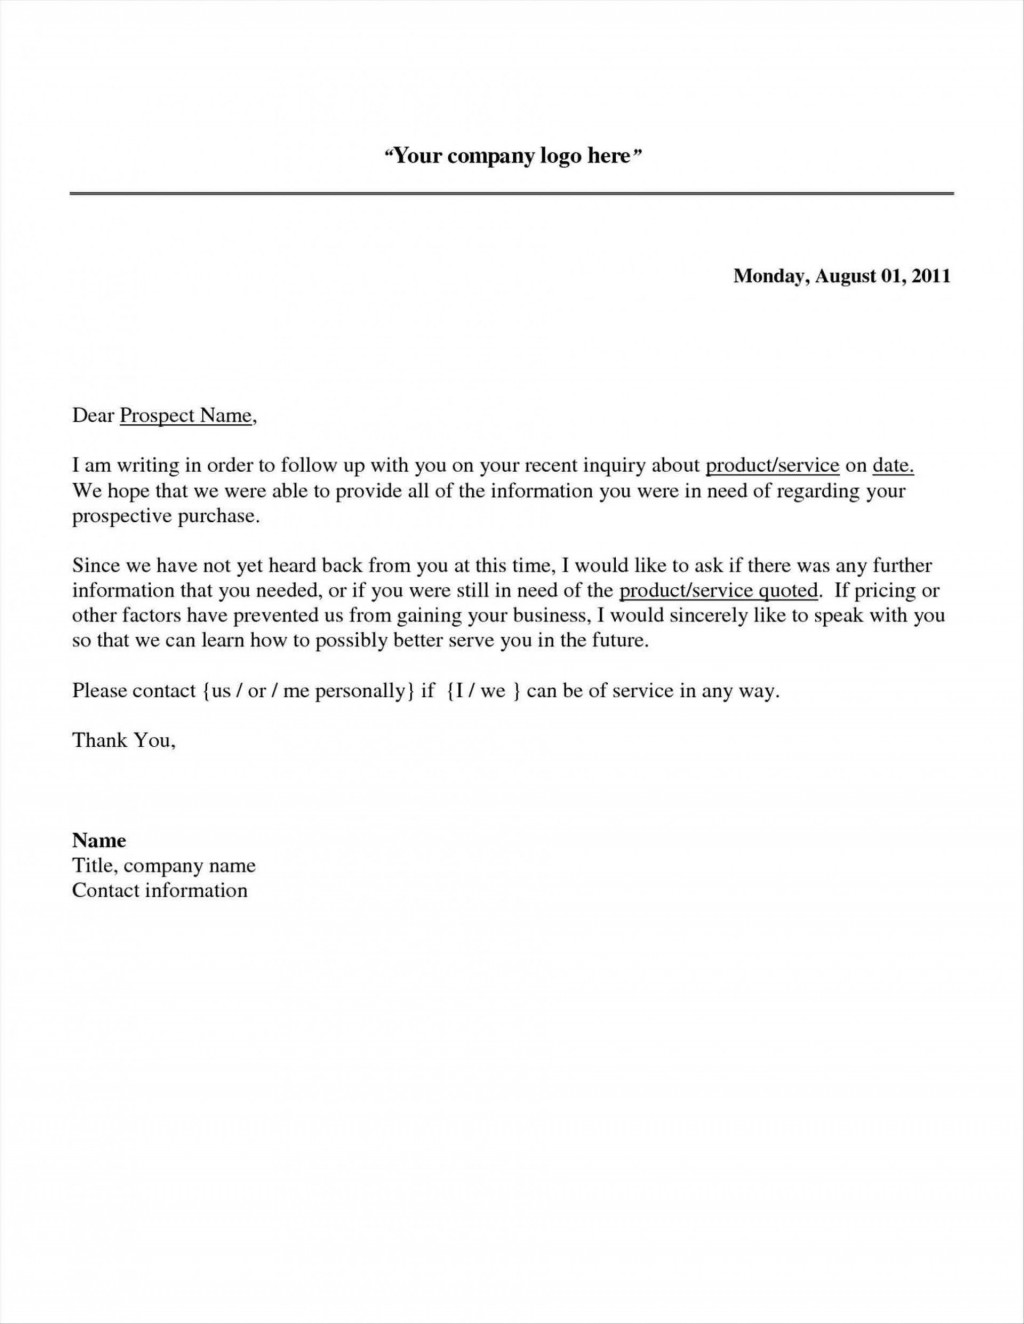 005 Unforgettable Follow Up Email Sample After No Response Template Inspiration Large